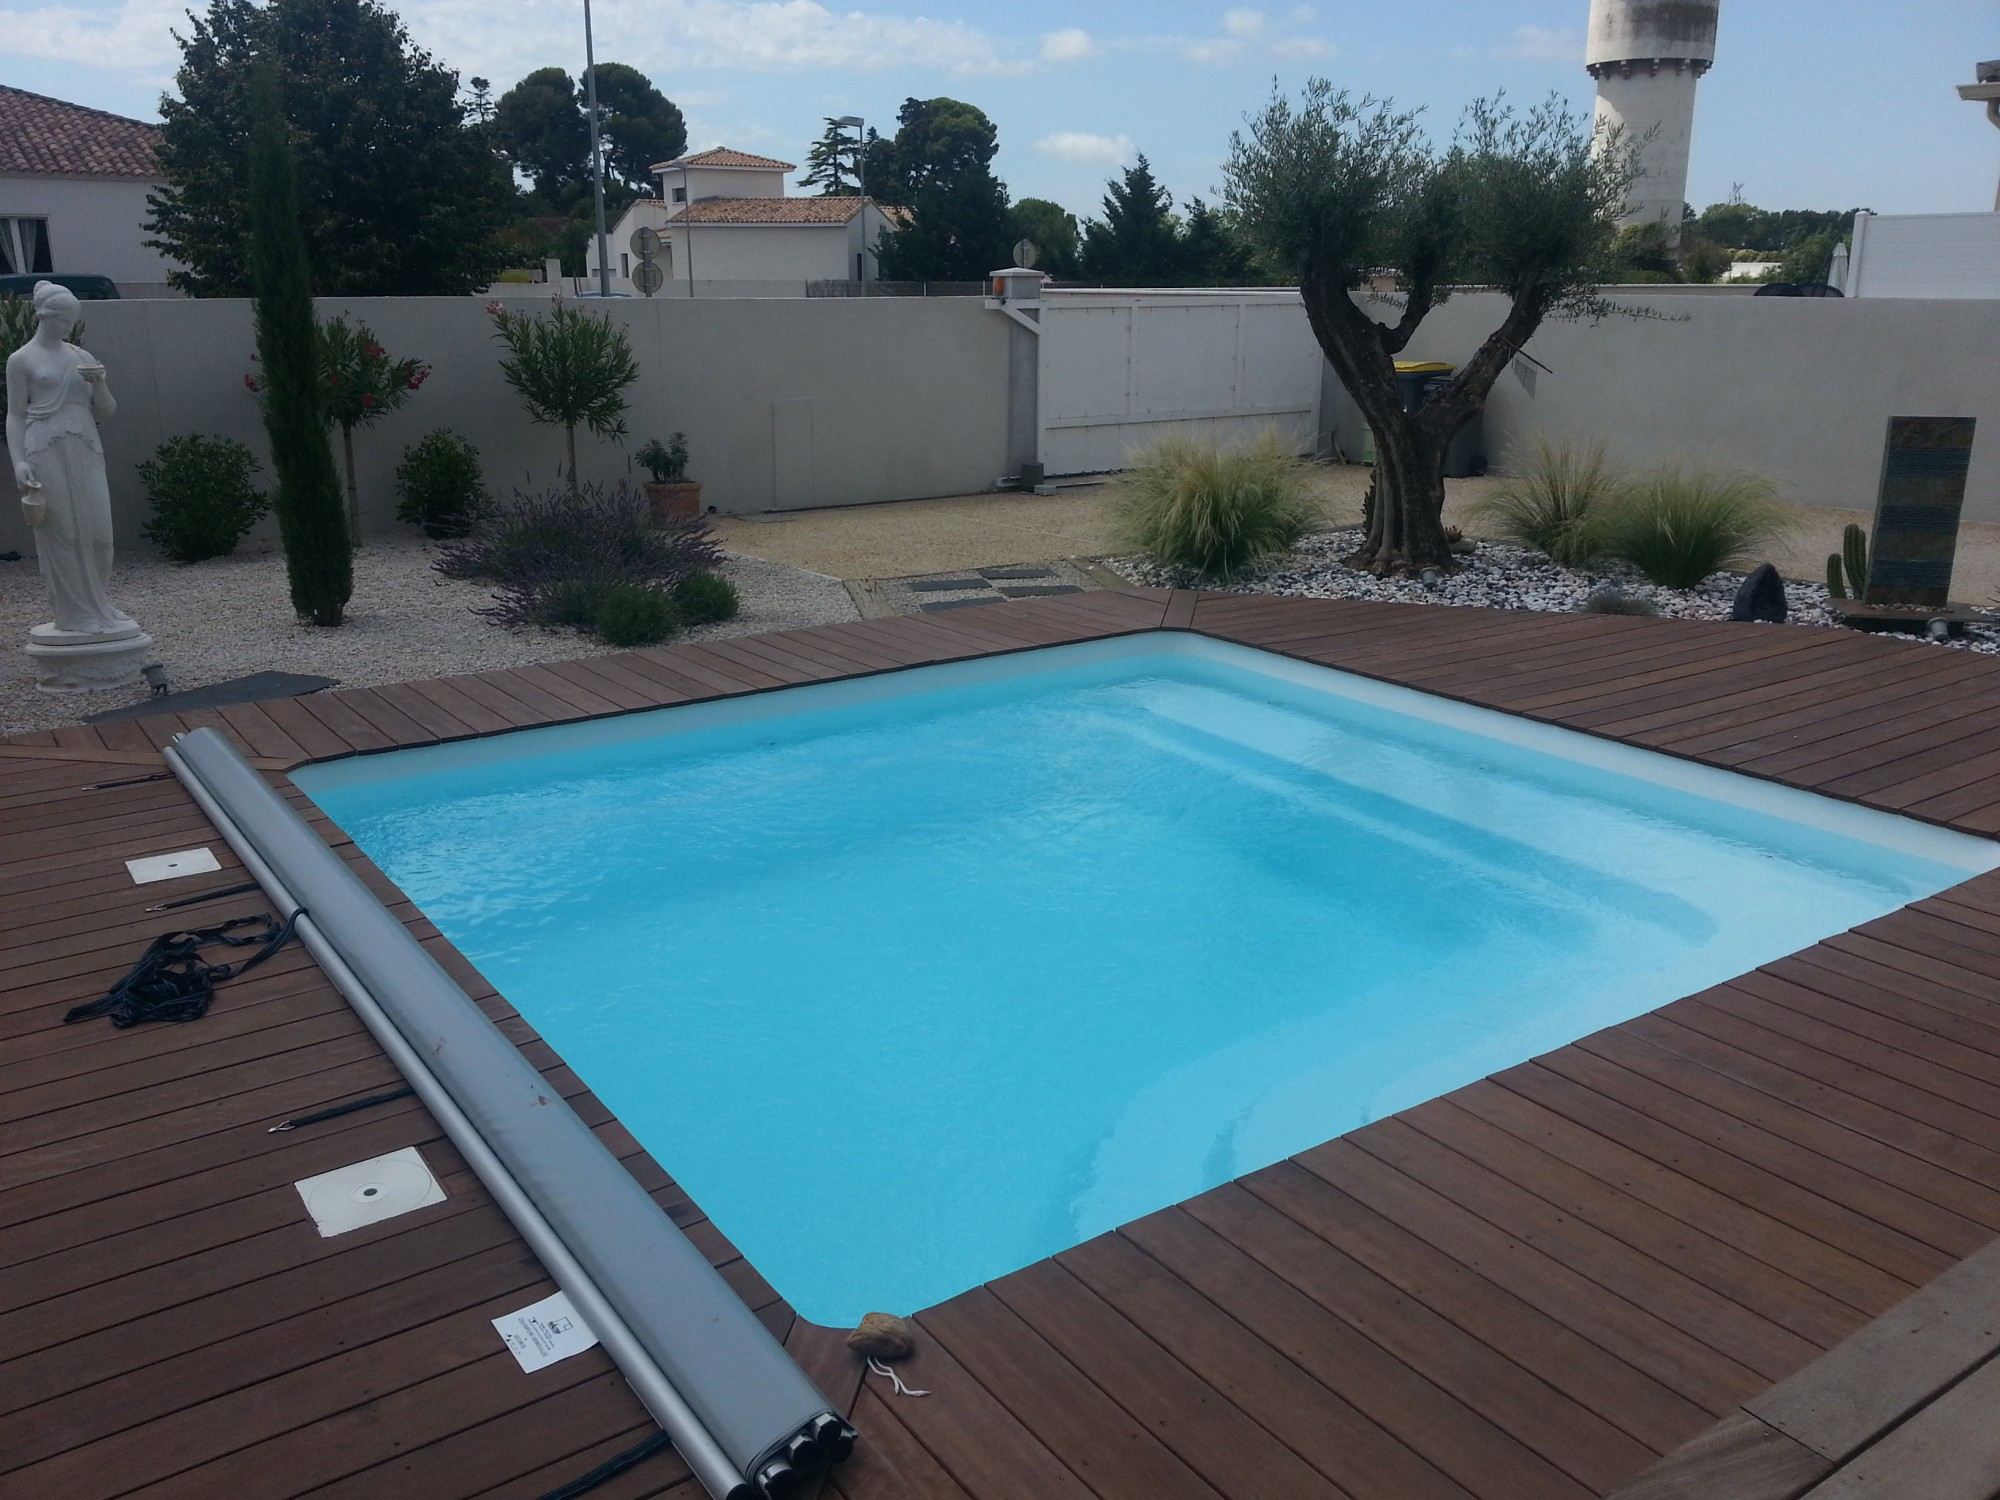 vennte et installation d 39 une piscine coque polyester 4x4 On piscine carree coque